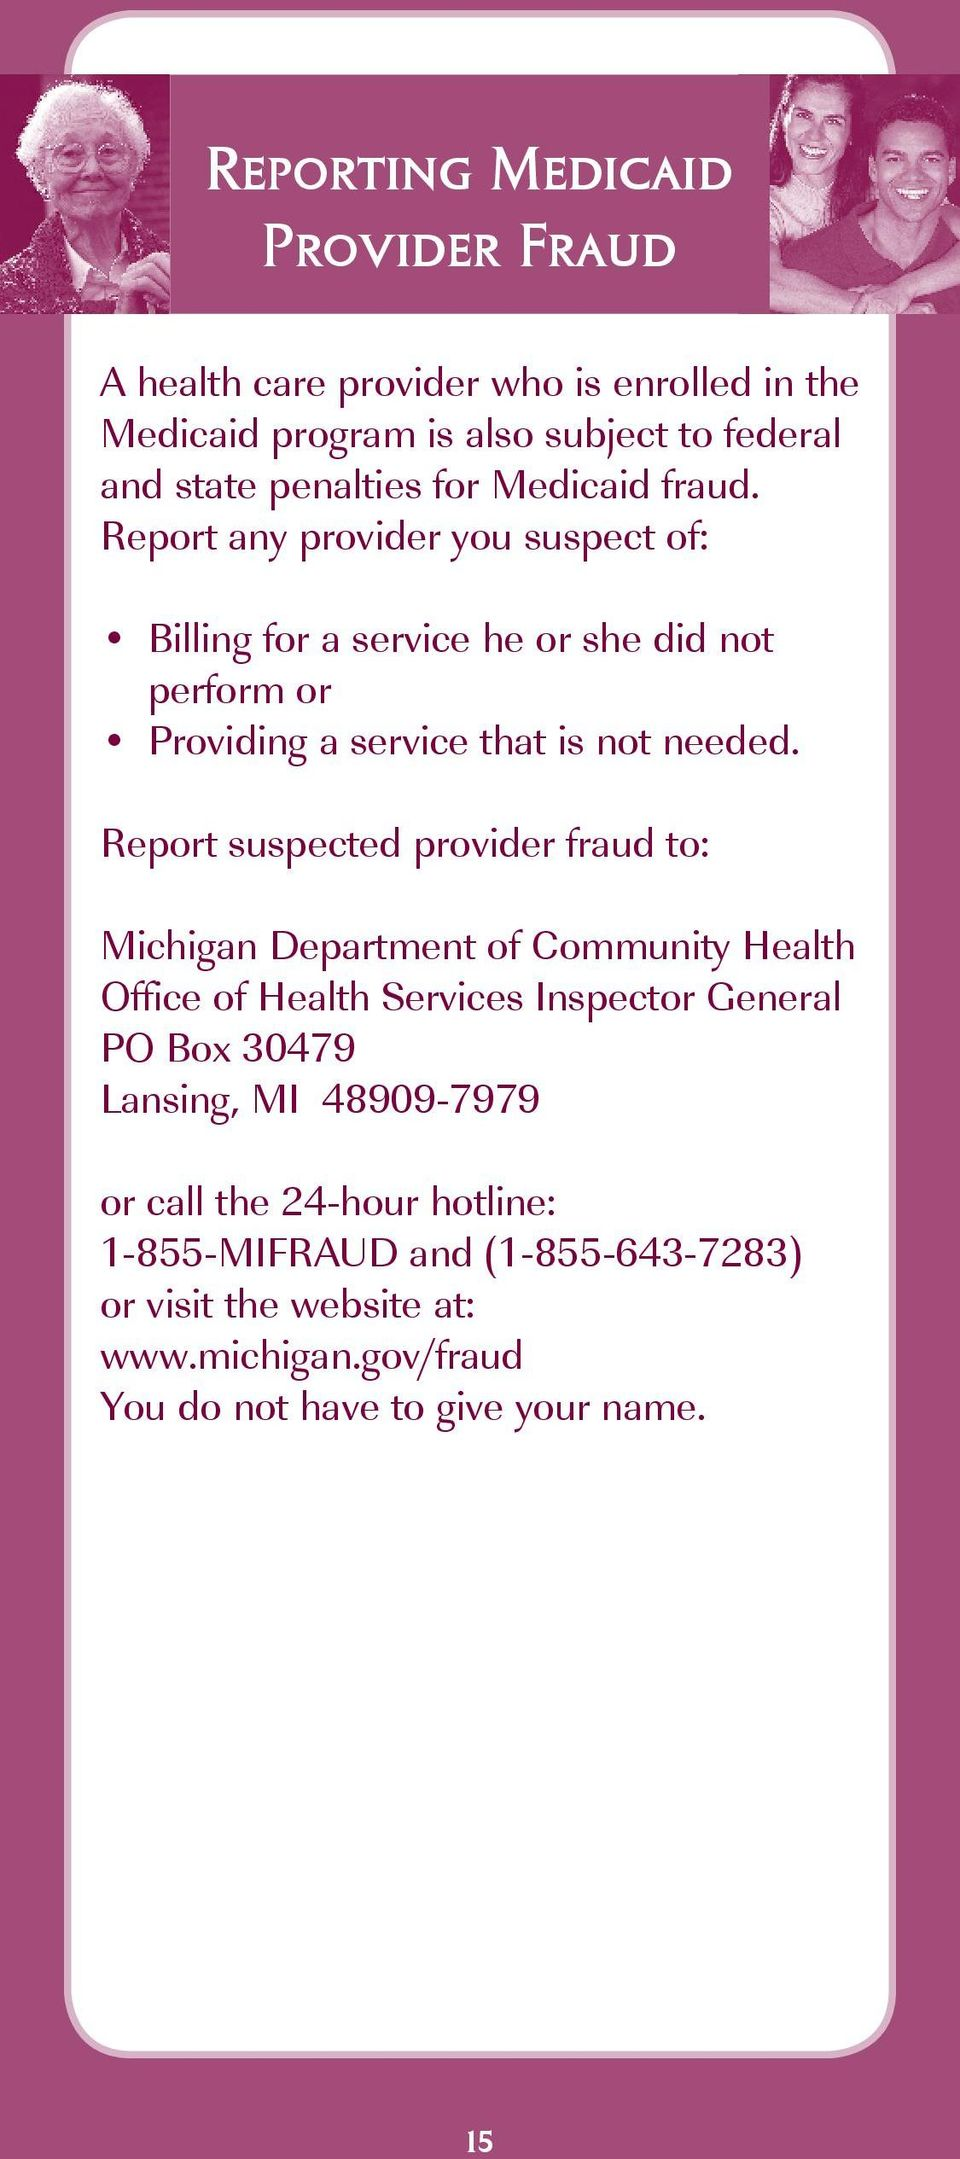 Report suspected provider fraud to: Michigan Department of Community Health Office of Health Services Inspector General PO Box 30479 Lansing, MI